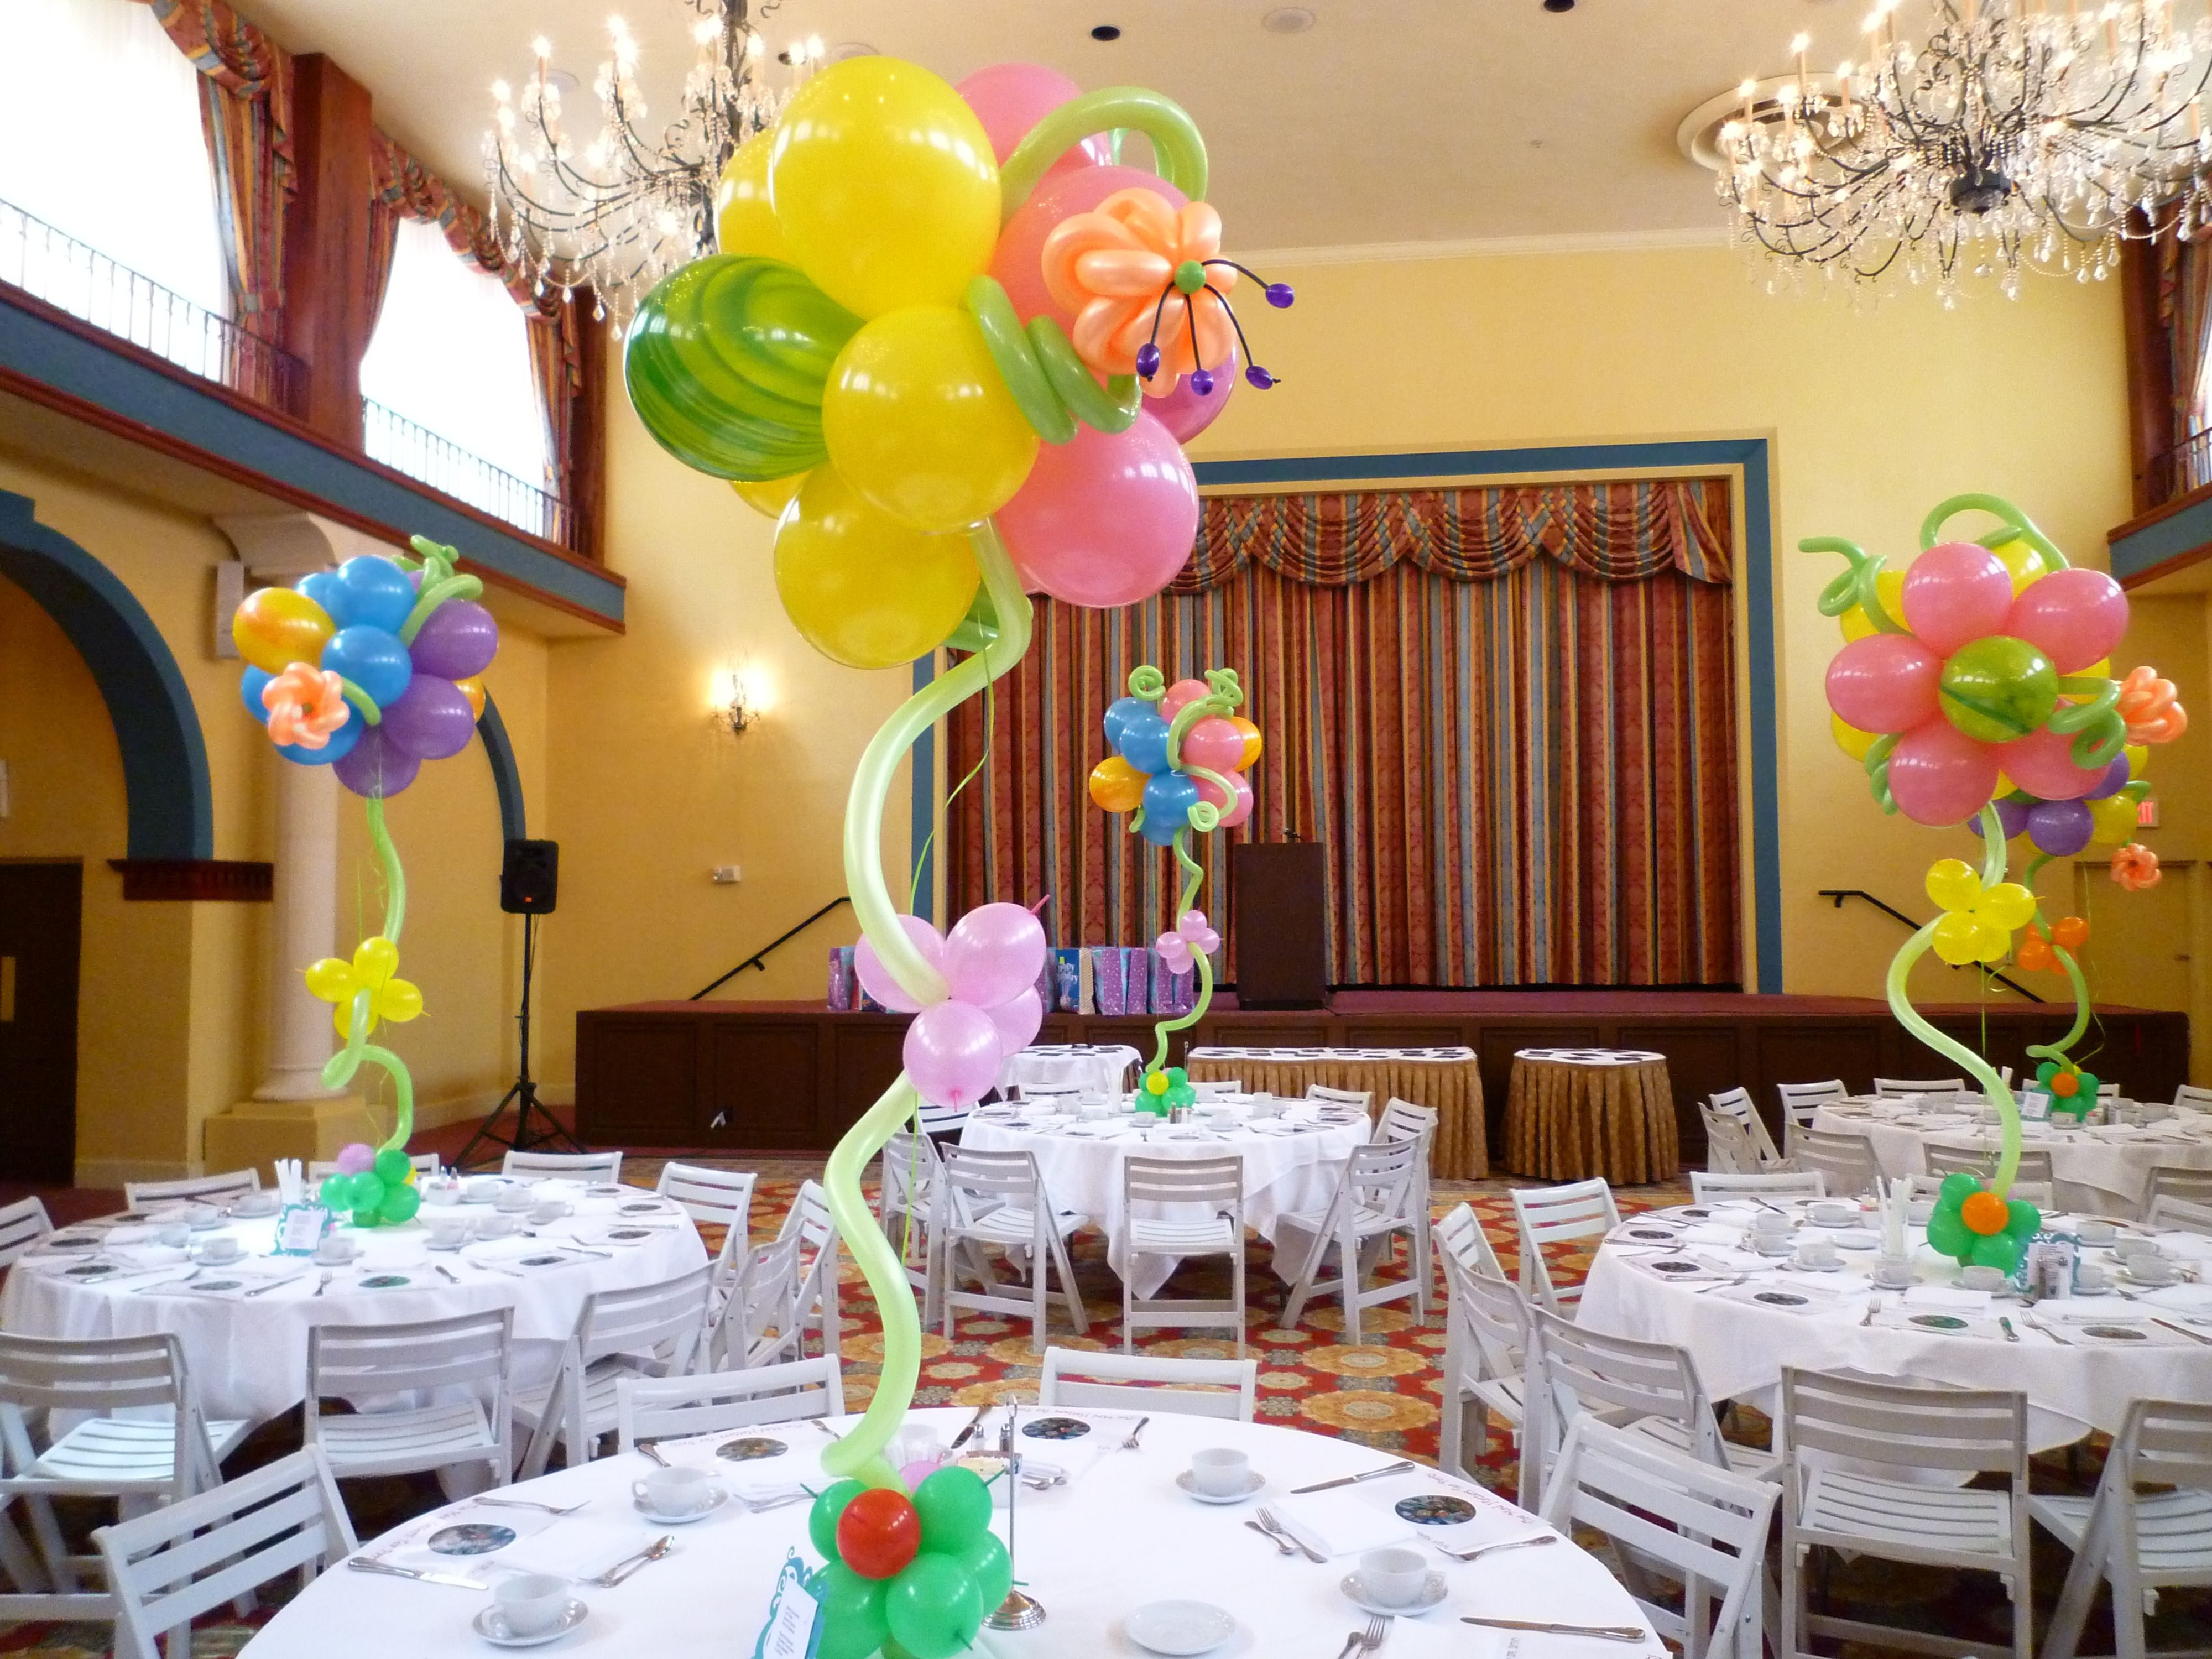 Easter Balloon Centerpiece Flower For Holiday Decoration Ideas Dreamarkevents